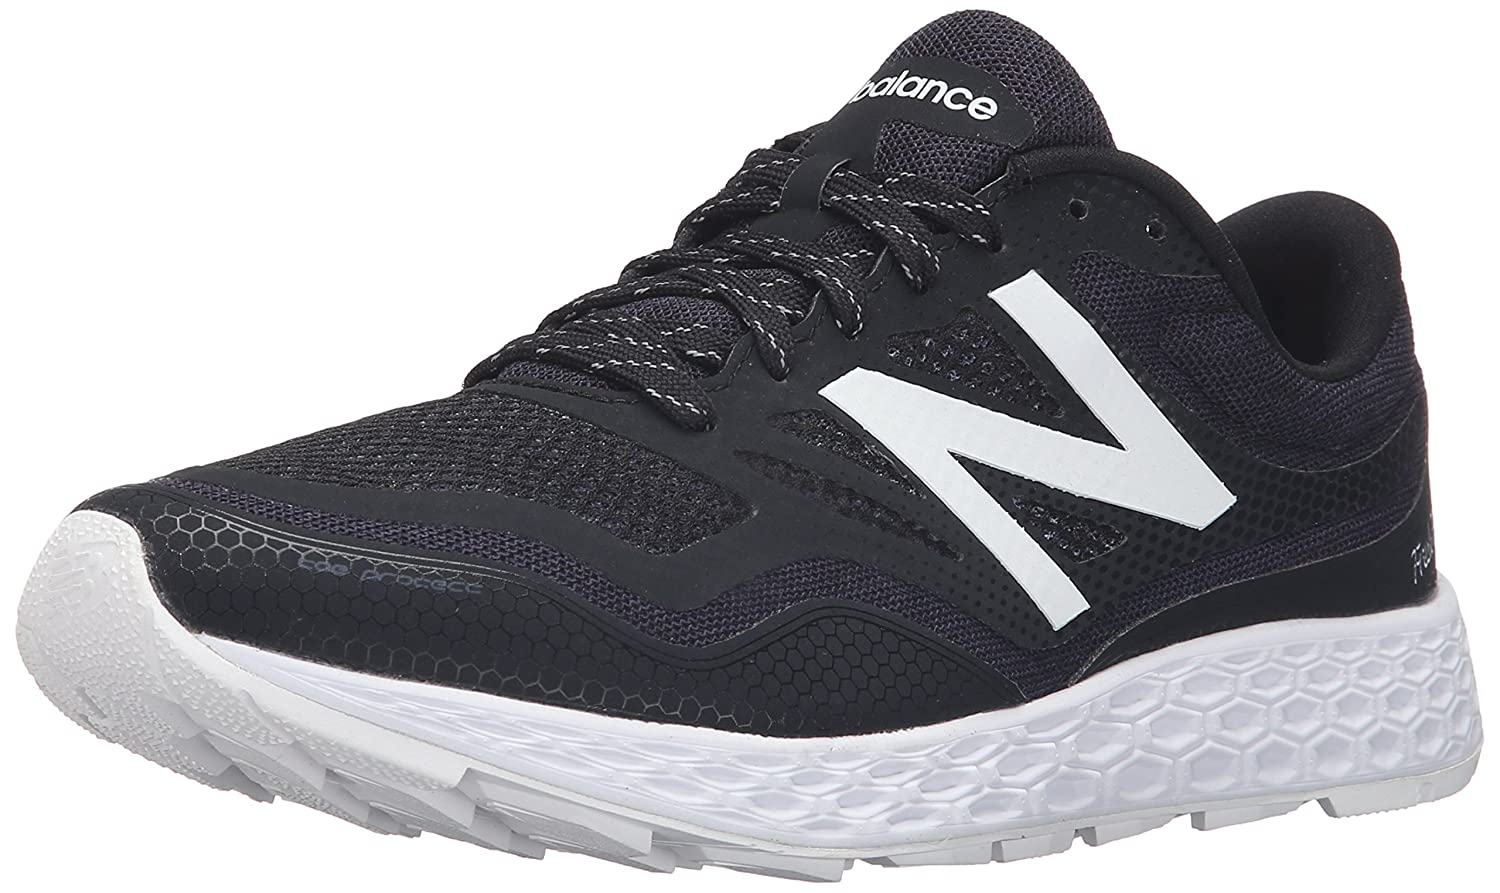 SCARPA RUNNING TRIAL FRESH FOAM GOBI TRAIL 7 D(M) US|Negro/Blanco